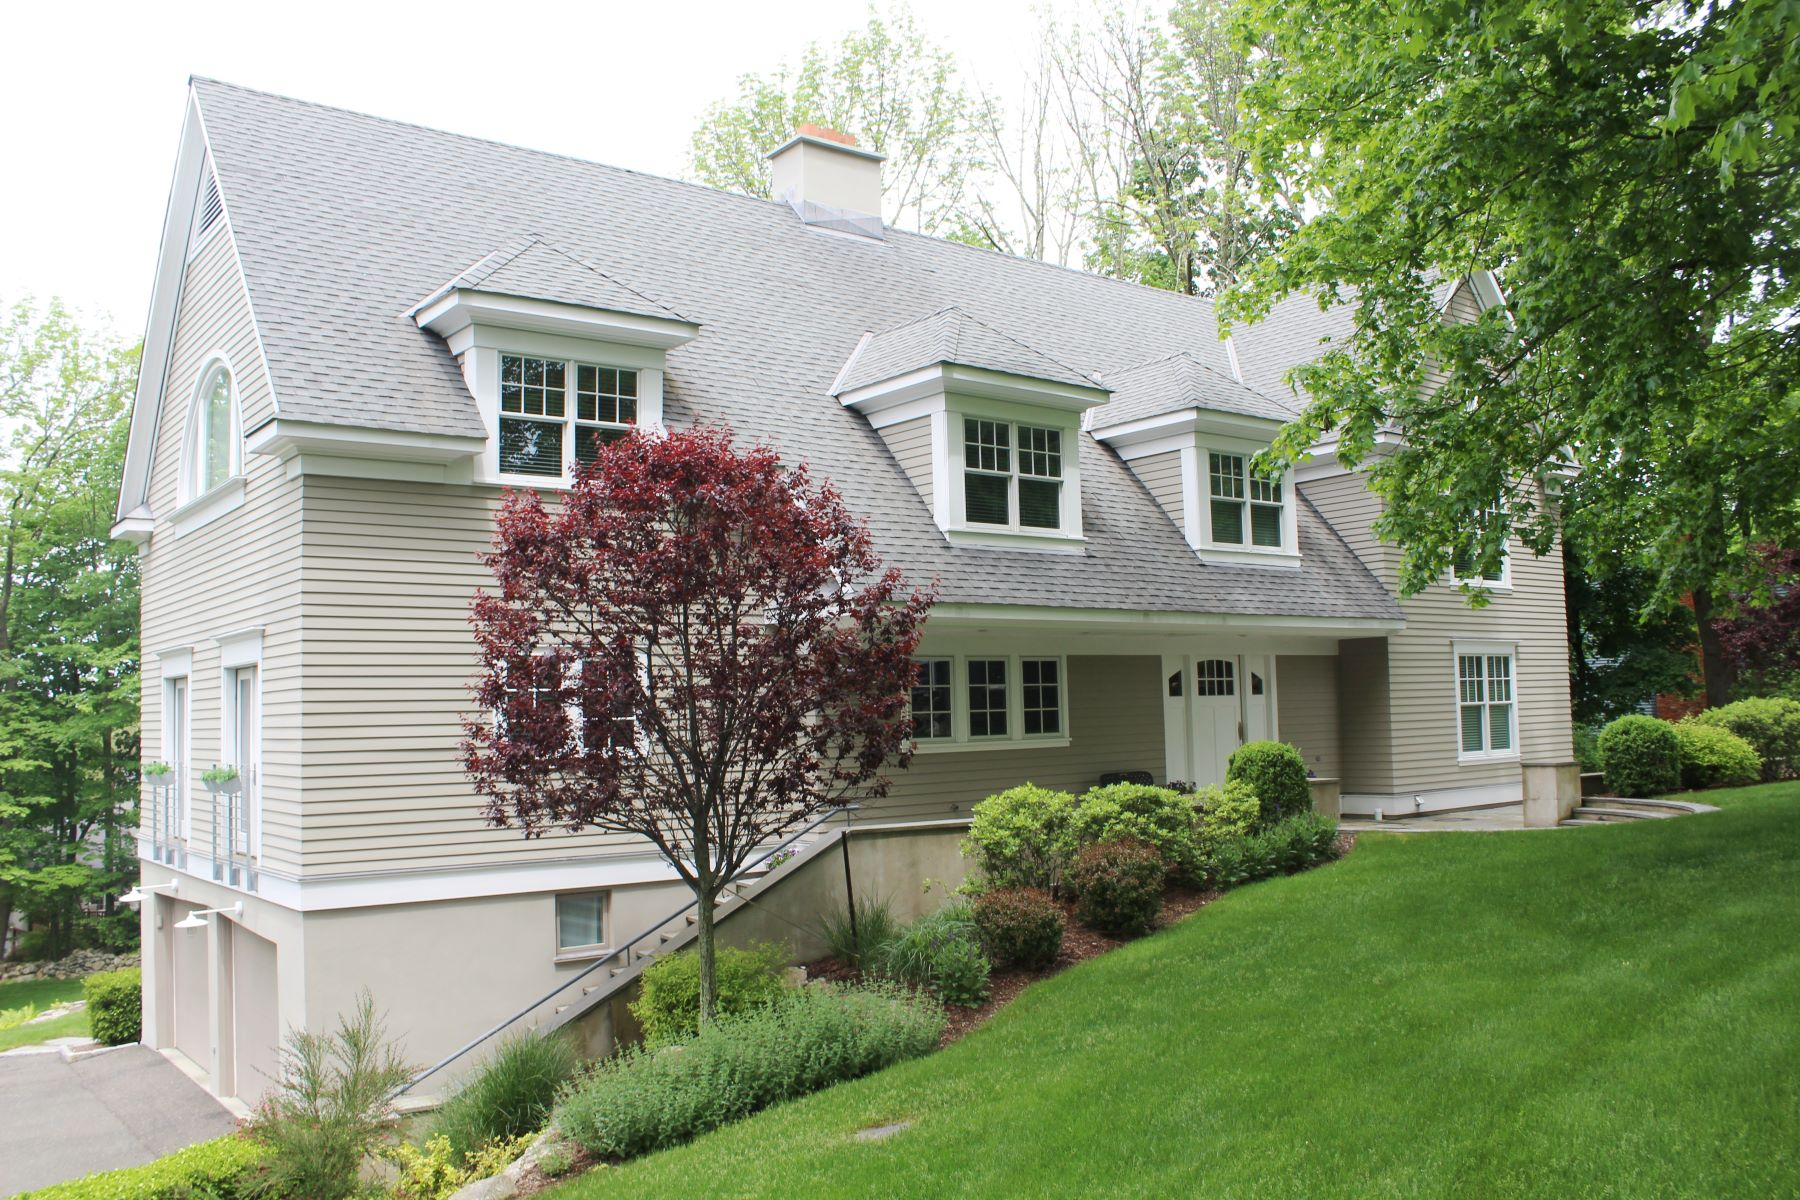 Single Family Home for Rent at Architect's Own Home 224 West Lane Ridgefield, Connecticut 06877 United States